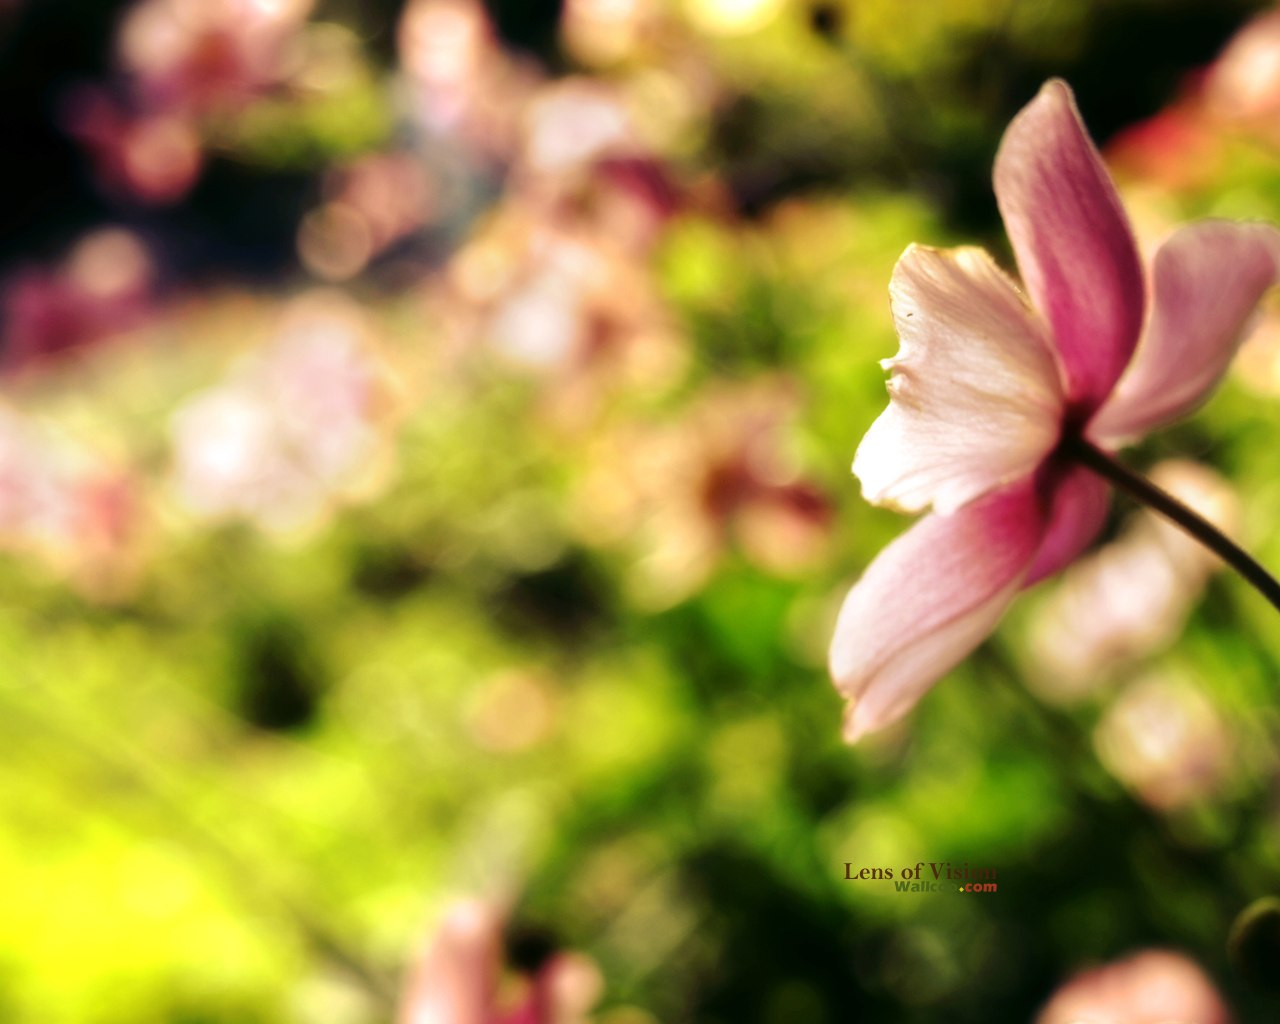 Bokeh Photography - Digital Photography - Nature Photography 1280*1024 ...